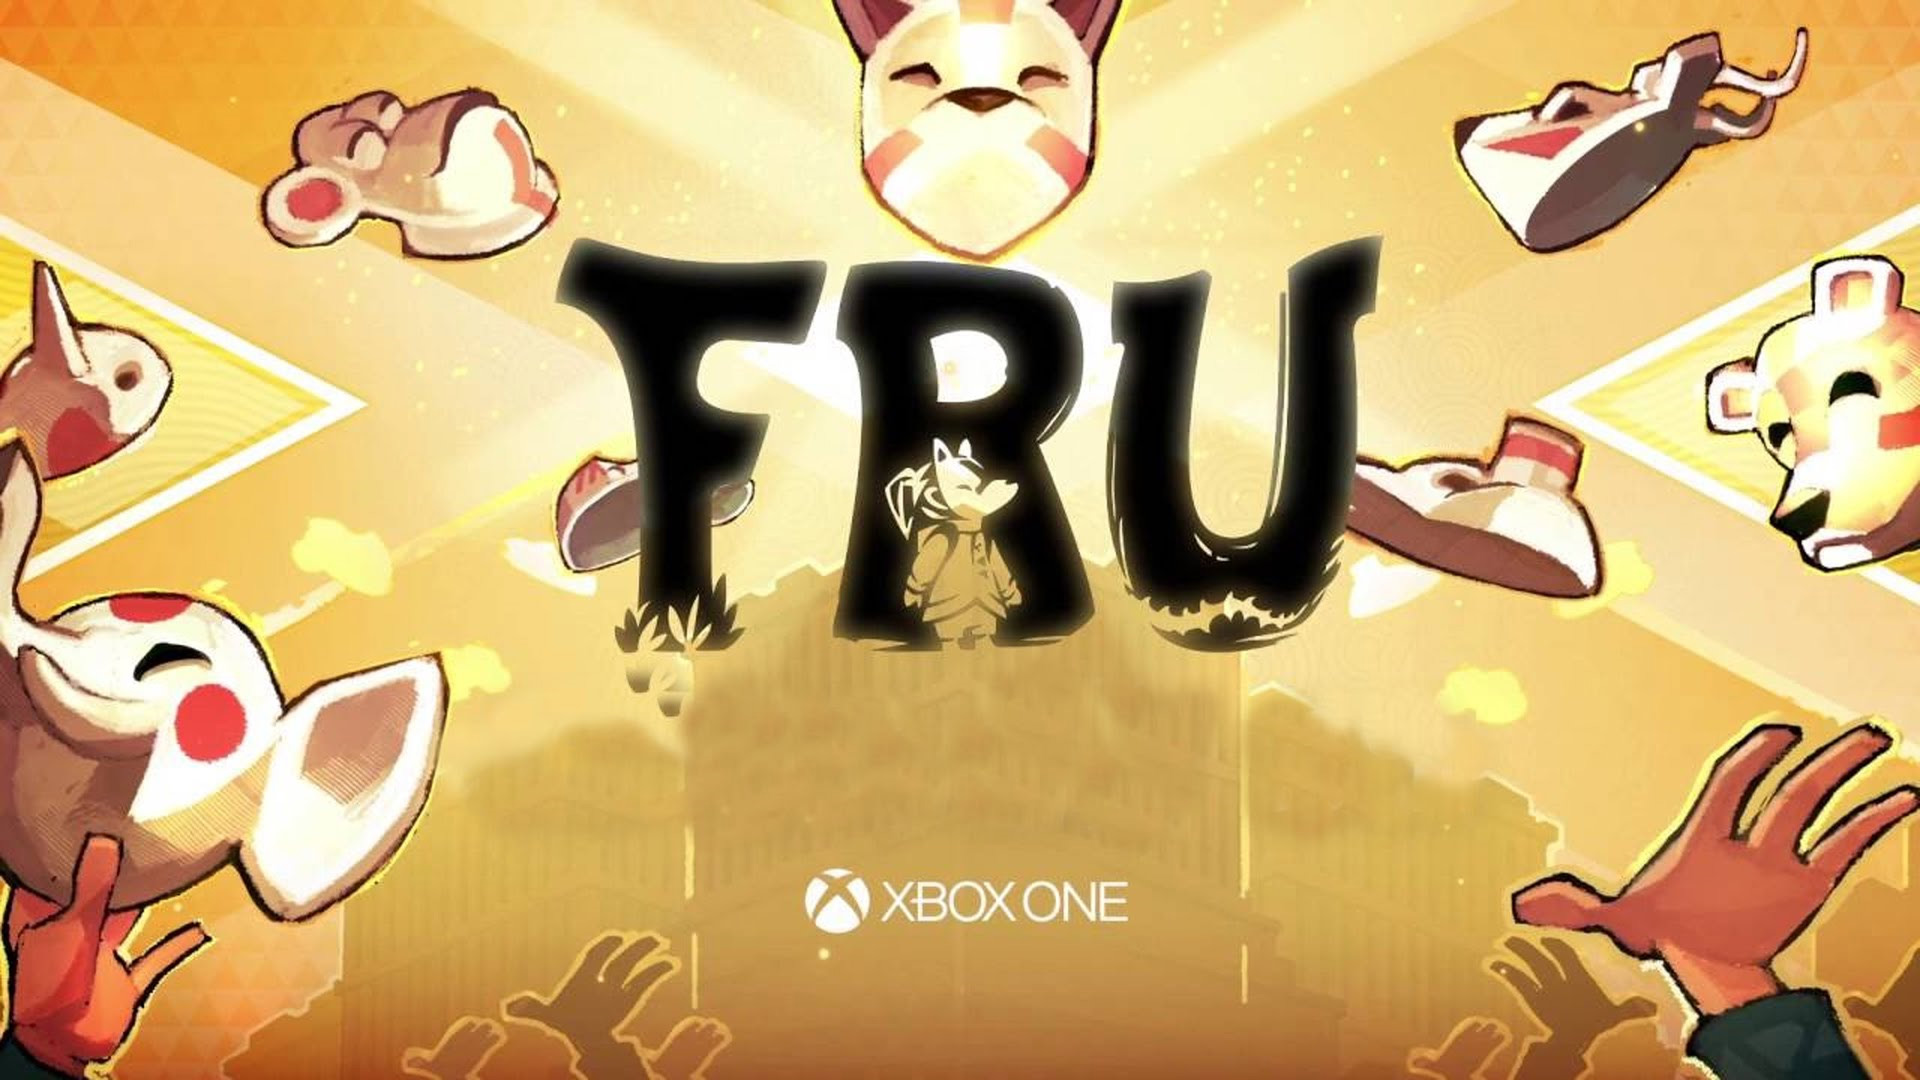 Fru Wallpaper Xbox One Kinect